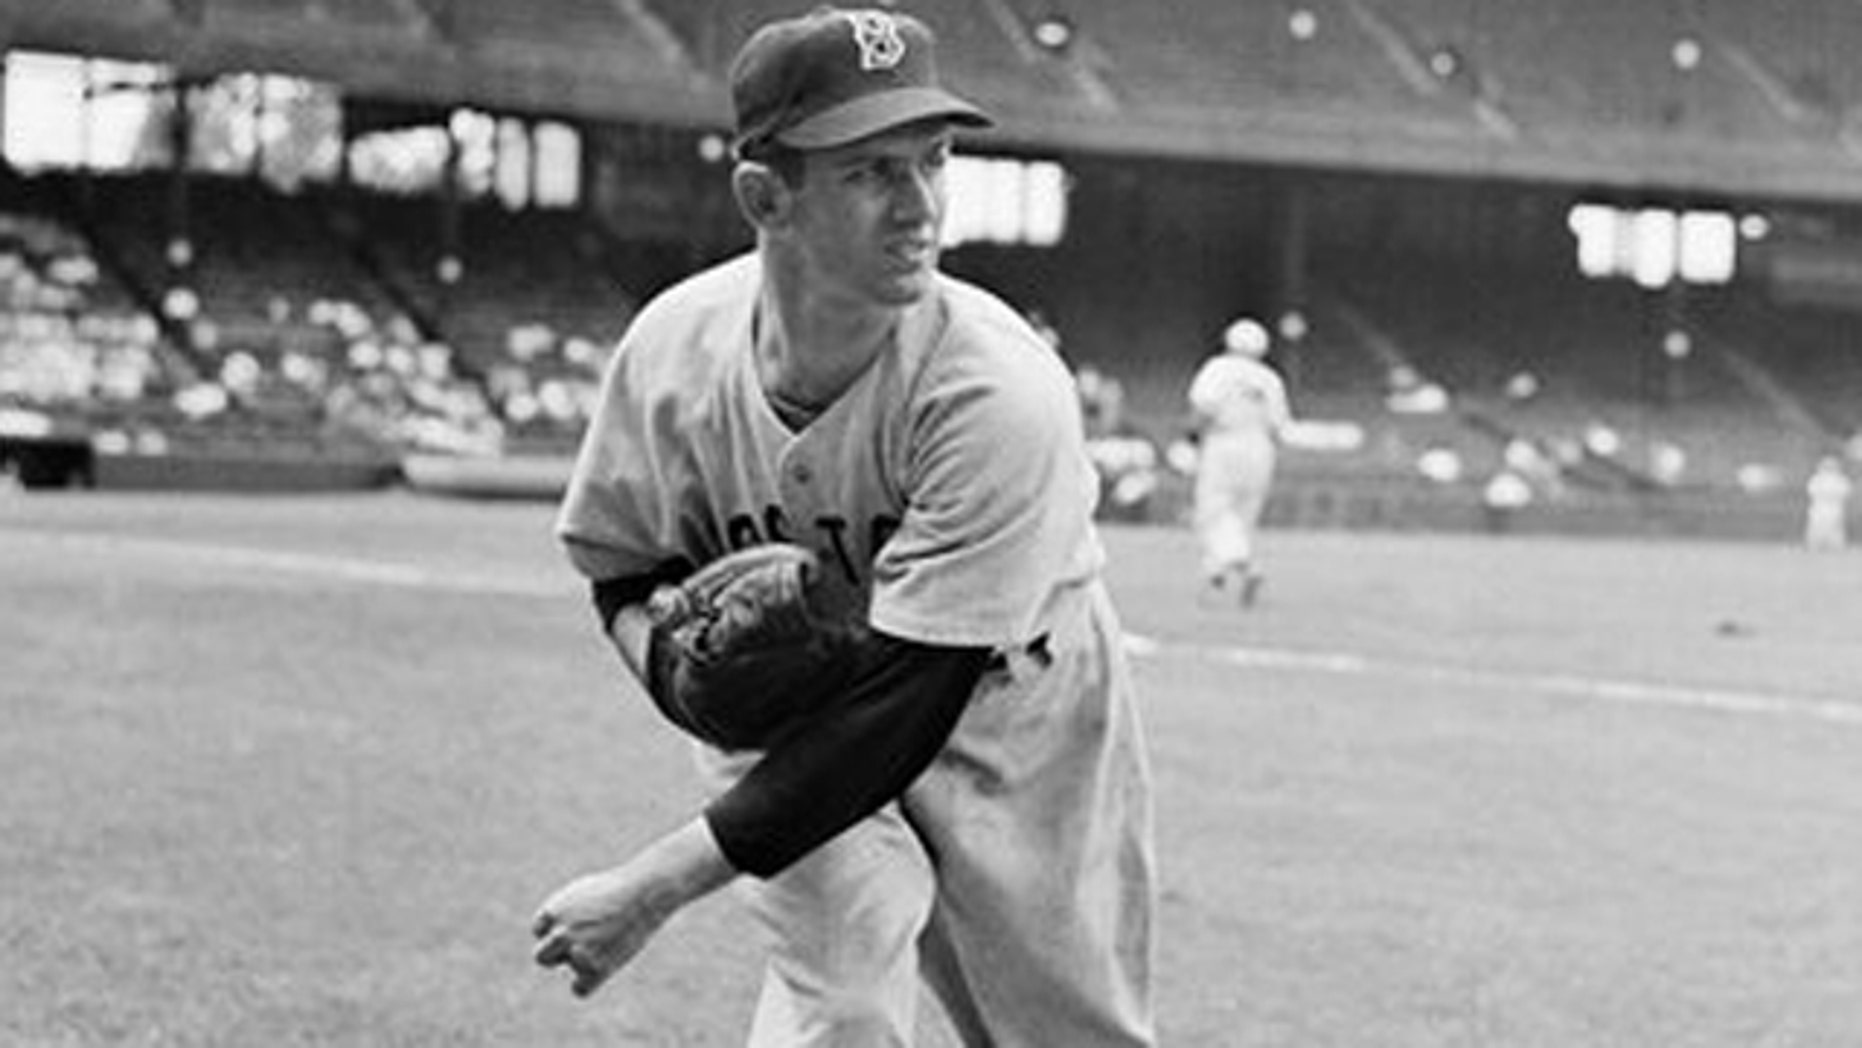 June 9, 1949: In this file photo, Boston Red Sox pitcher Mel Parnell warms up before a game in St. Louis. Parnell, the left-handed pitcher who faced the infamous Green Monster at Fenway Park and some of the best hitters of the 1940s and early 1950s, has died at age 89.